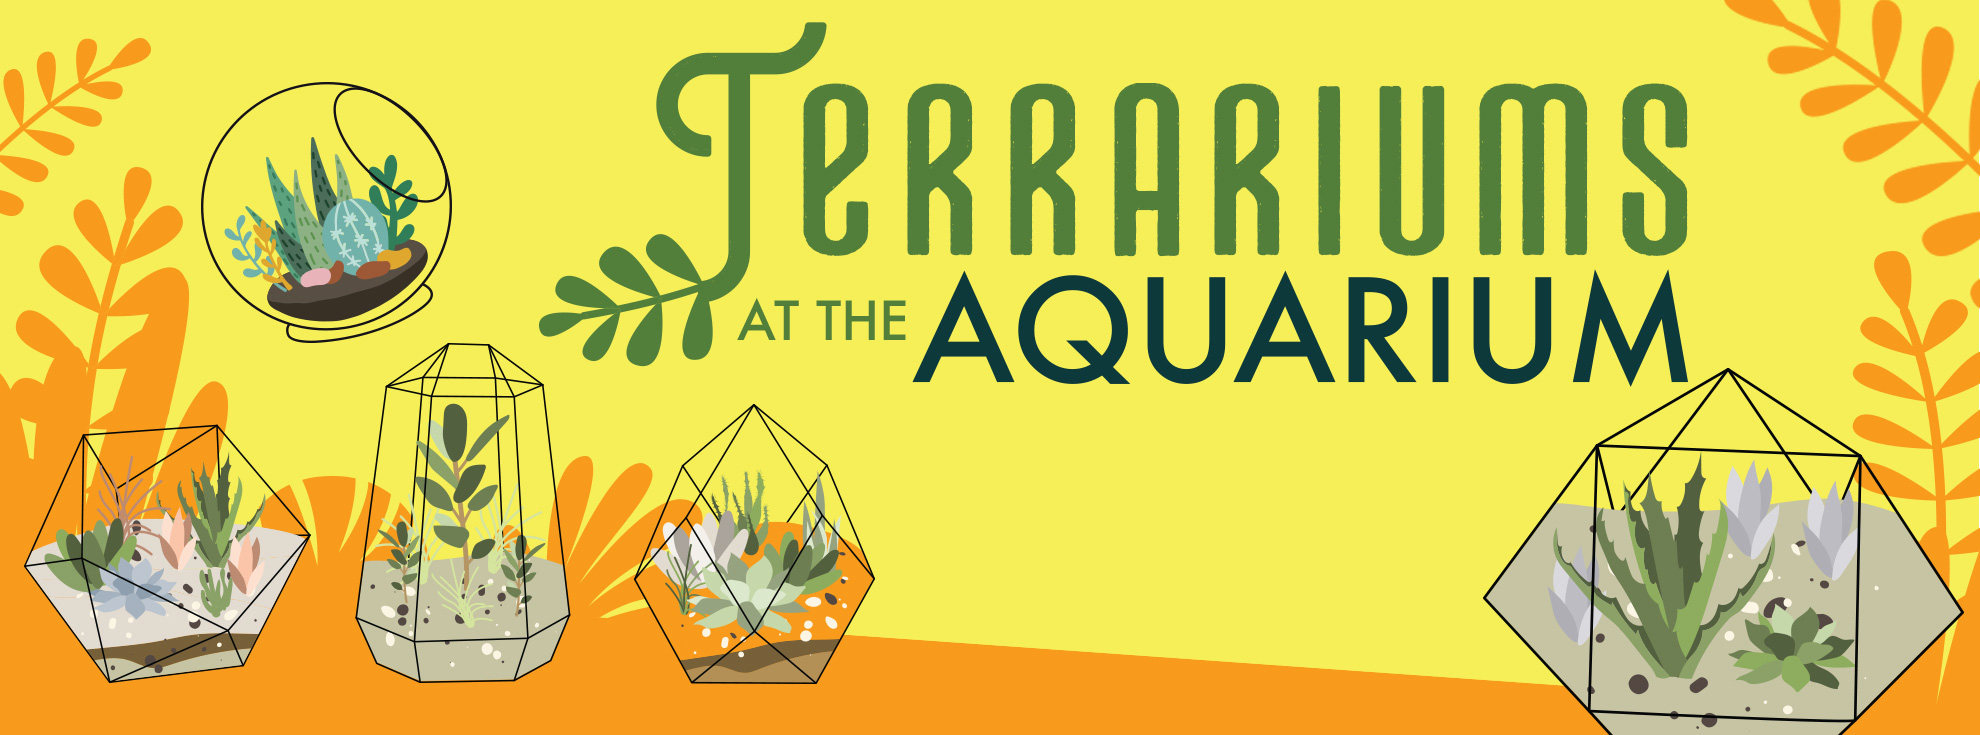 Terrariums at the Aquarium